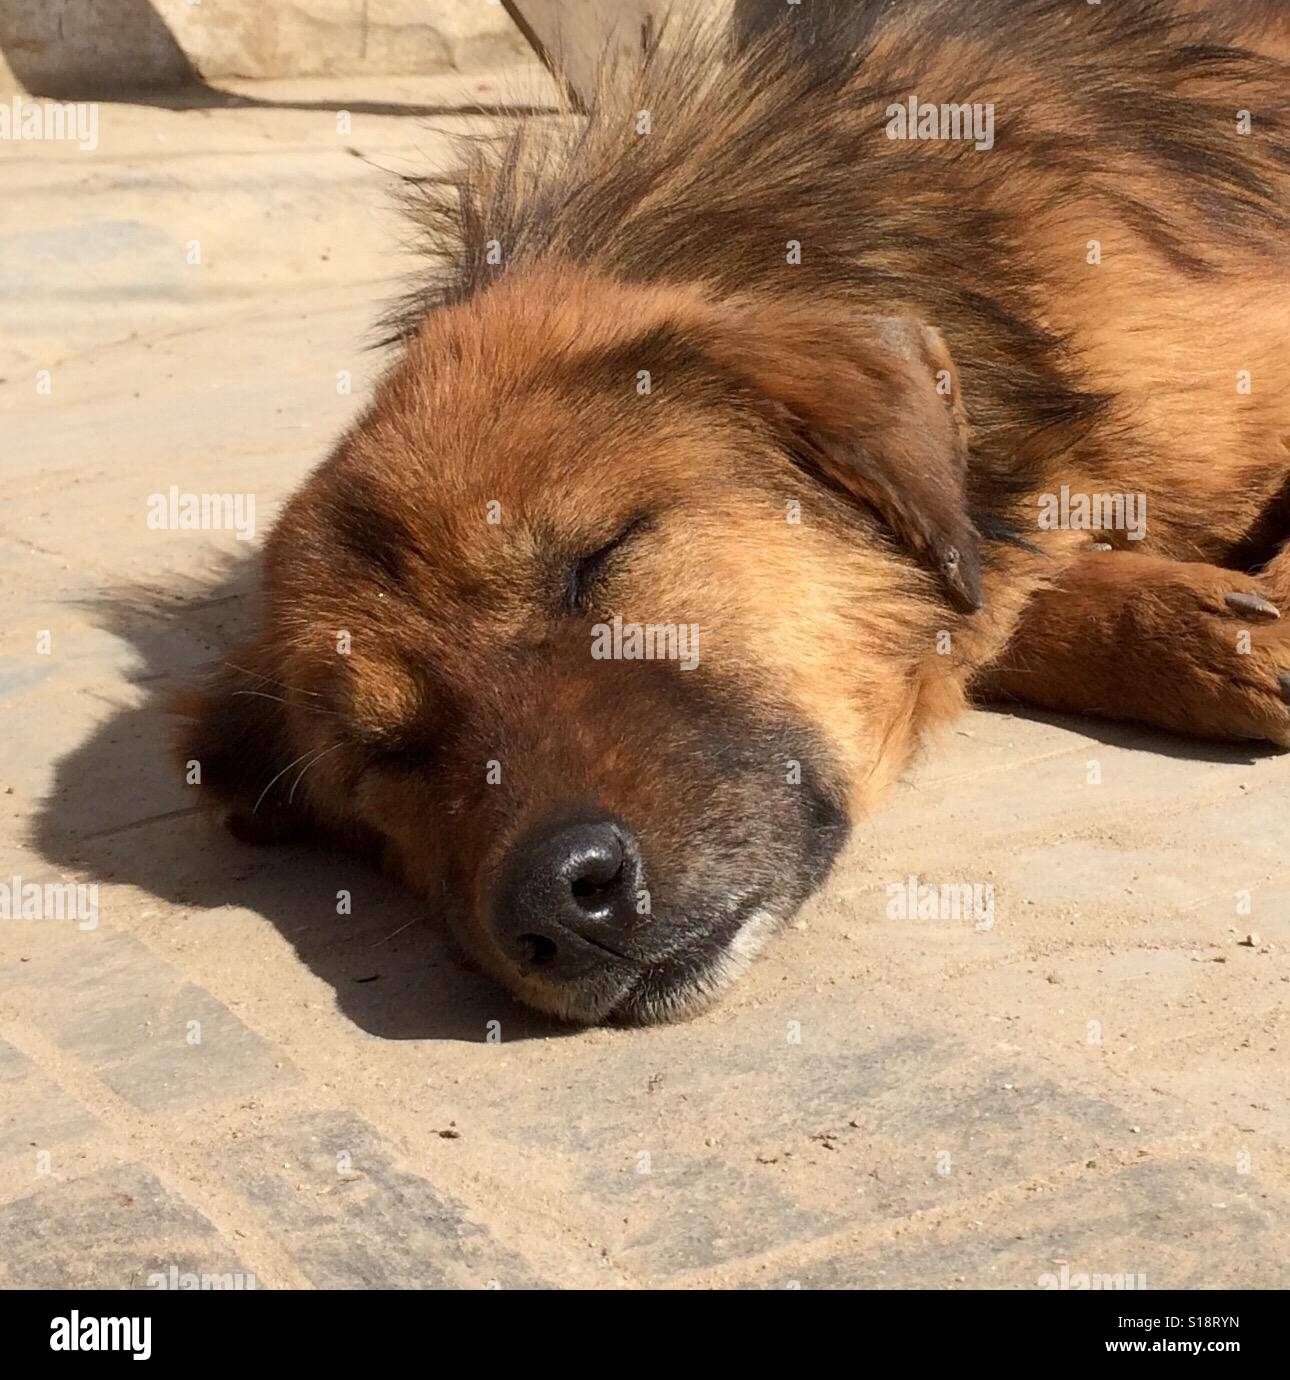 Old dog sleeping in the sun - Stock Image